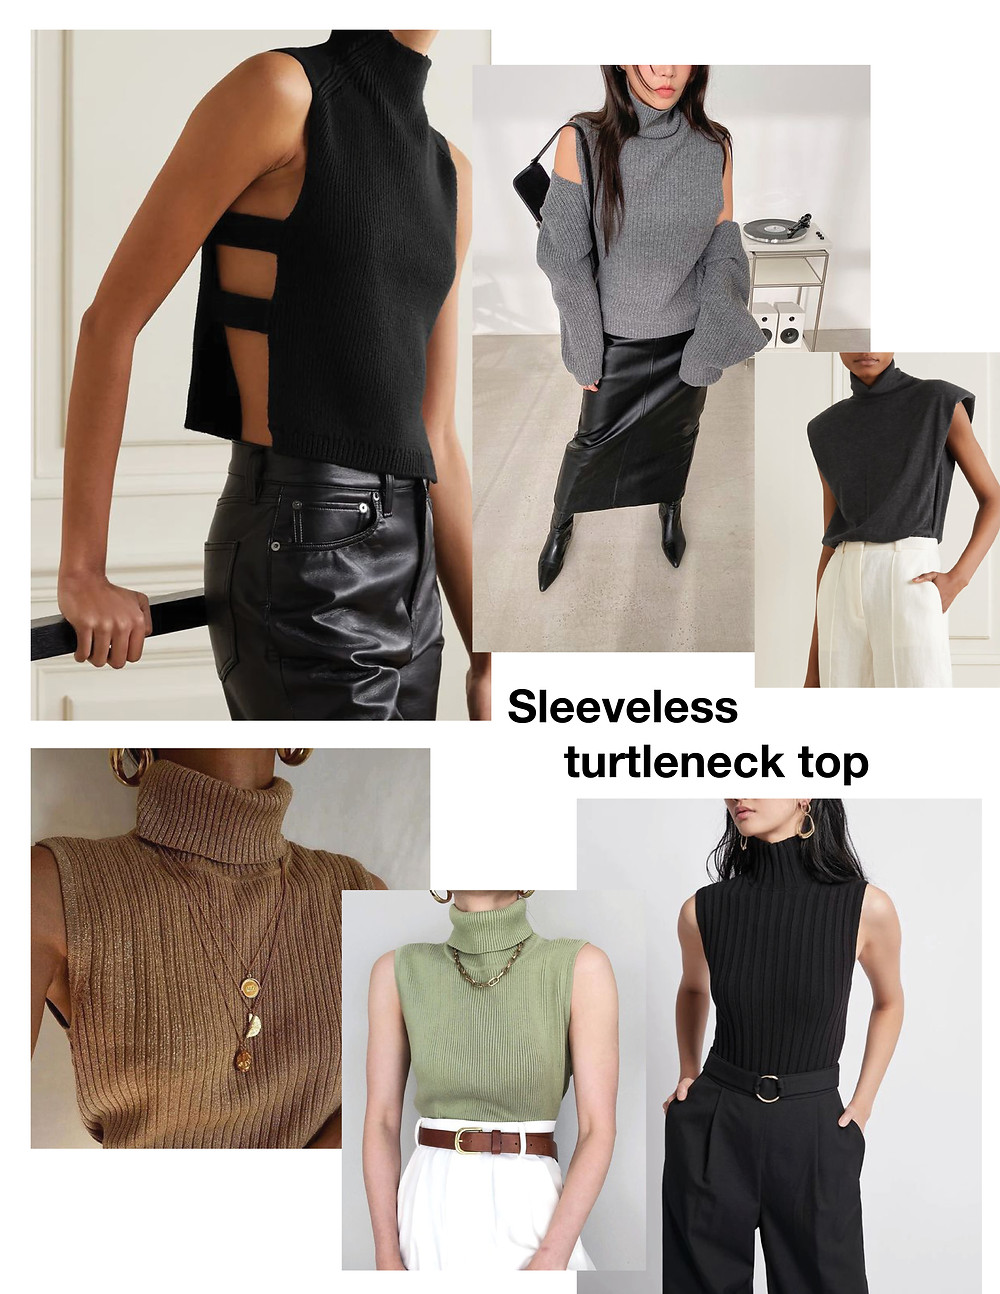 Sleeveless turtleneck top, must have, shopping